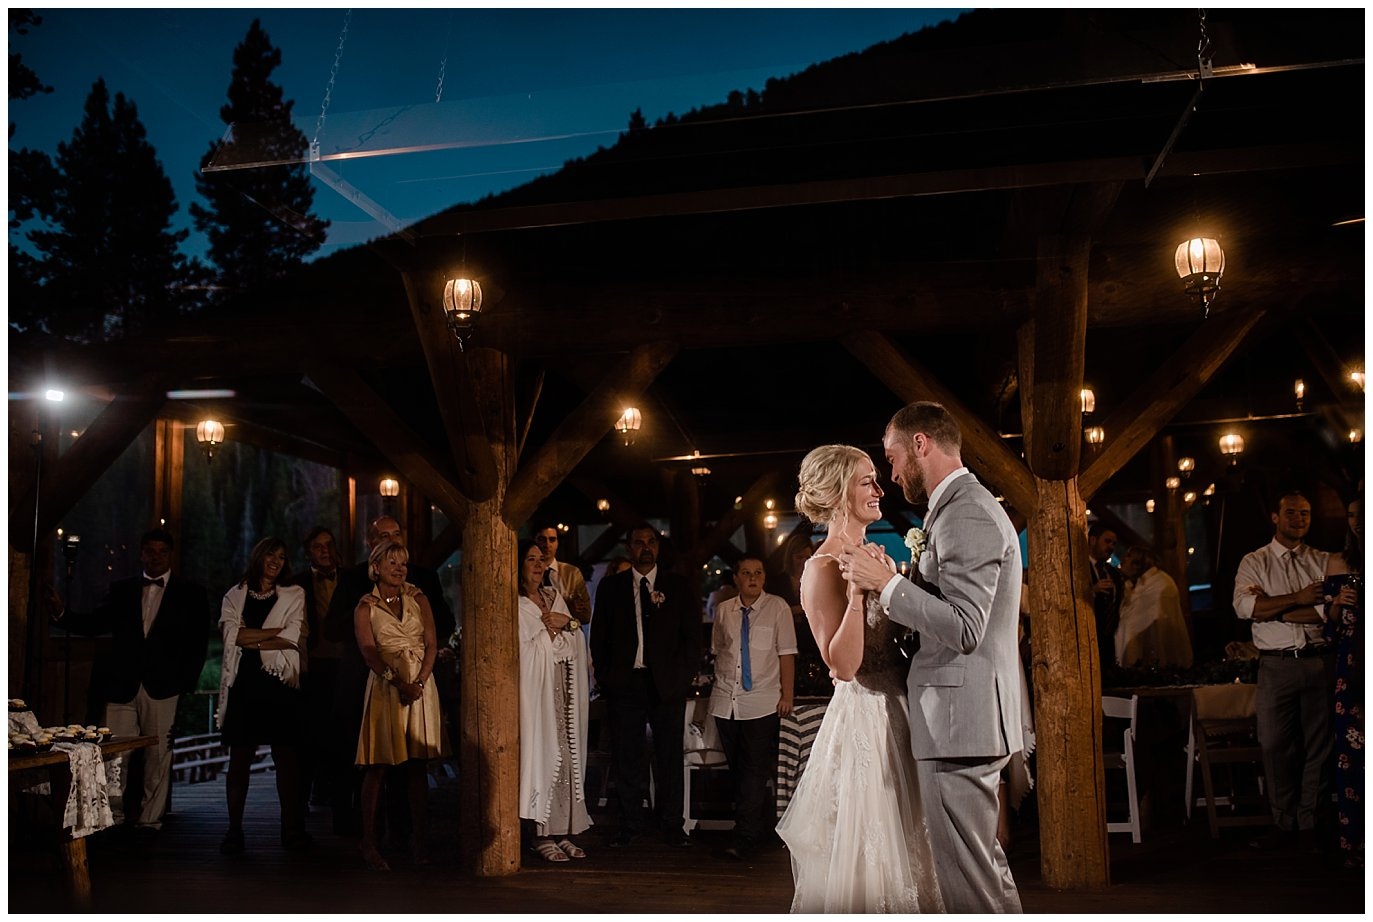 bride and groom first dance aat Piney River Ranch wedding by Aspen wedding photographer Jennie Crate, Photographer